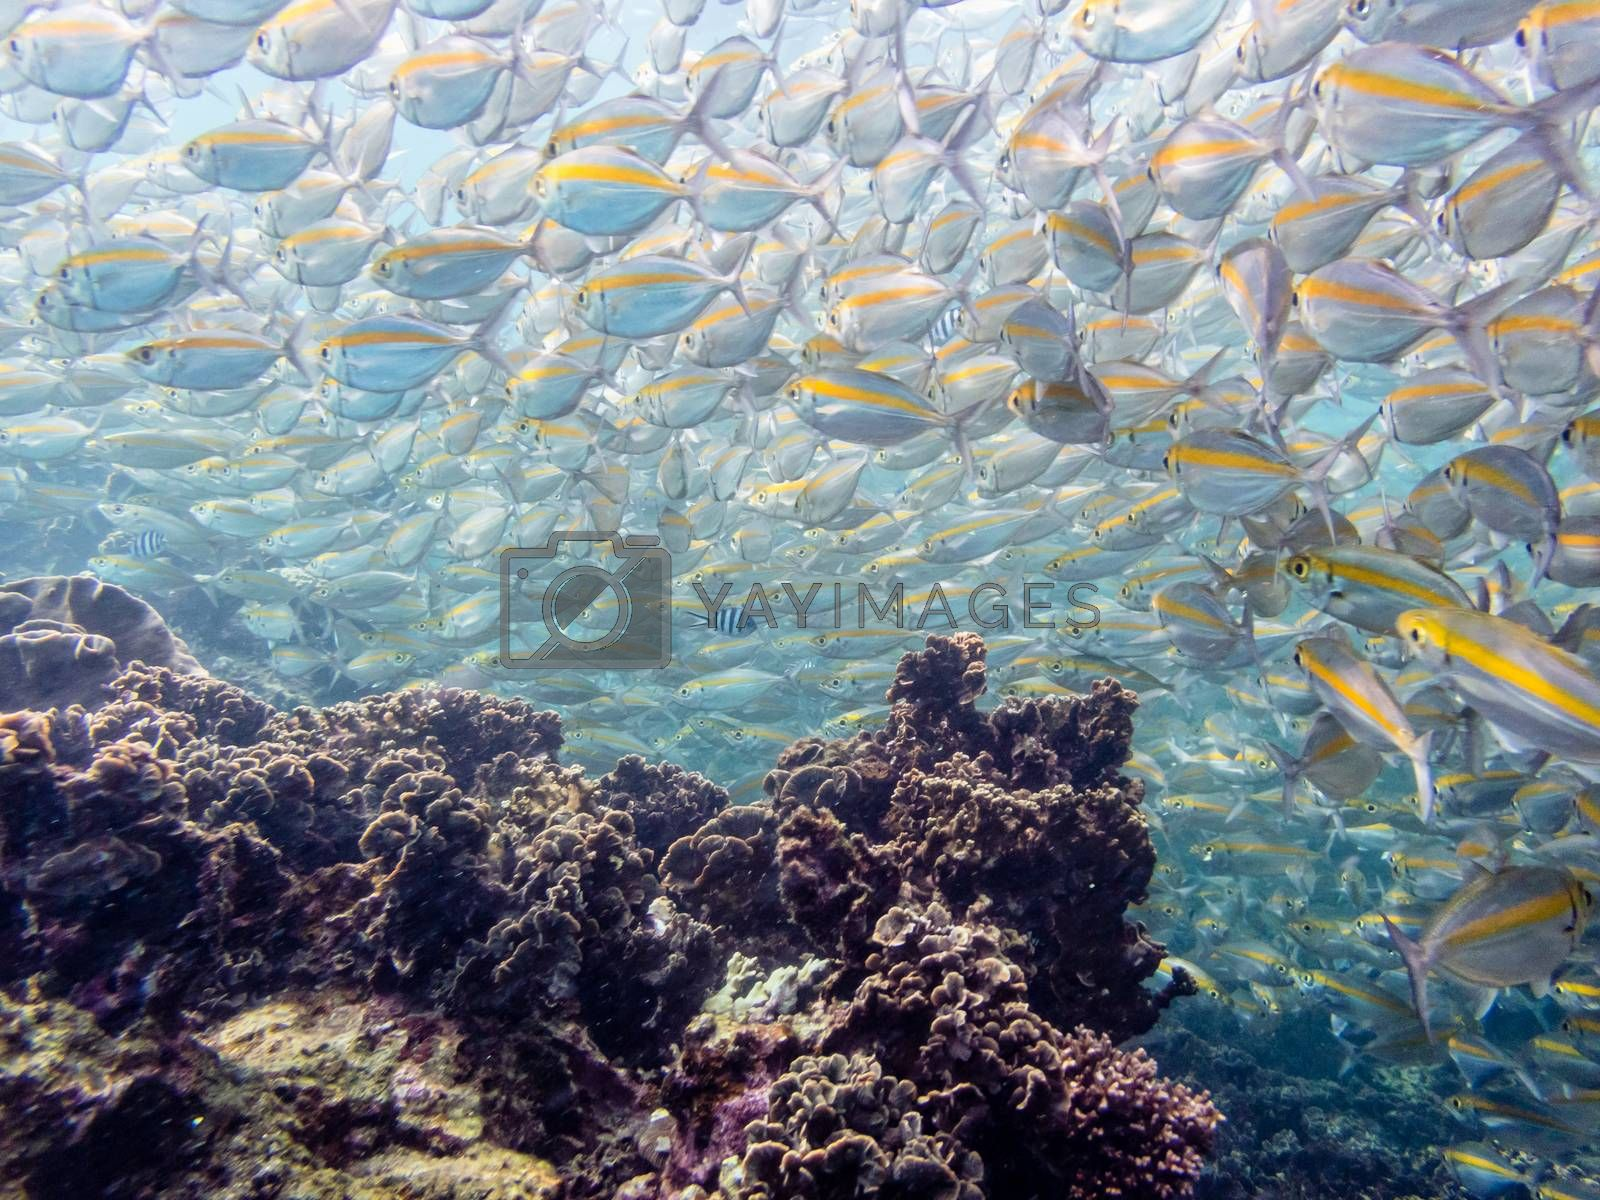 Underwater photos group of Goldband Fusilier or Pterocaesio Chrysozona is a sea fish herd with a bright yellow stripe beautiful swimming above the coral reefs at Koh Nang Yuan island in Thailand